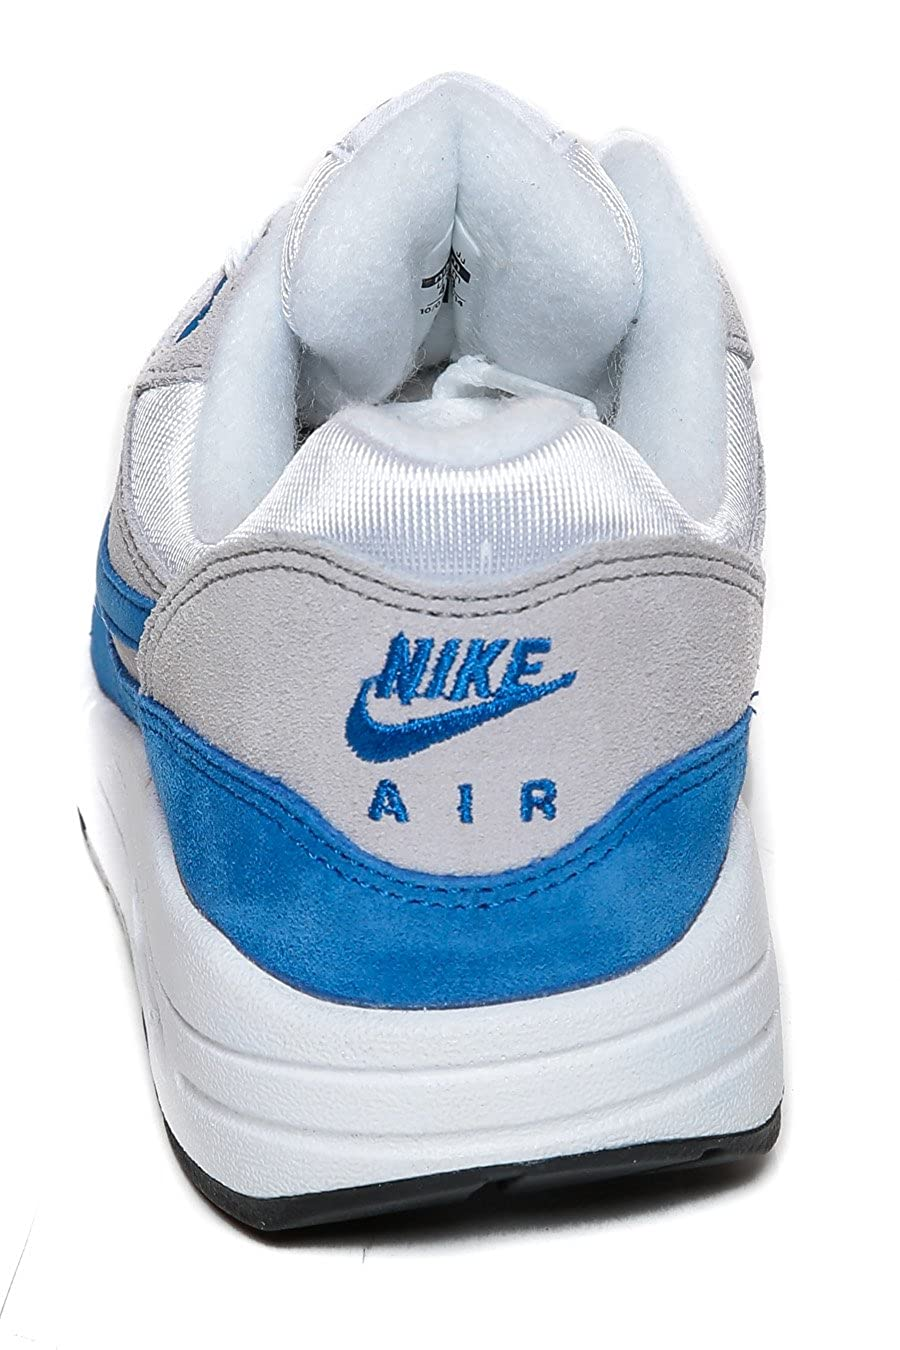 Nike Unisex Kids  Air Max 1 (Gs) Hi-Top Sneakers  Amazon.co.uk  Shoes   Bags becae6358